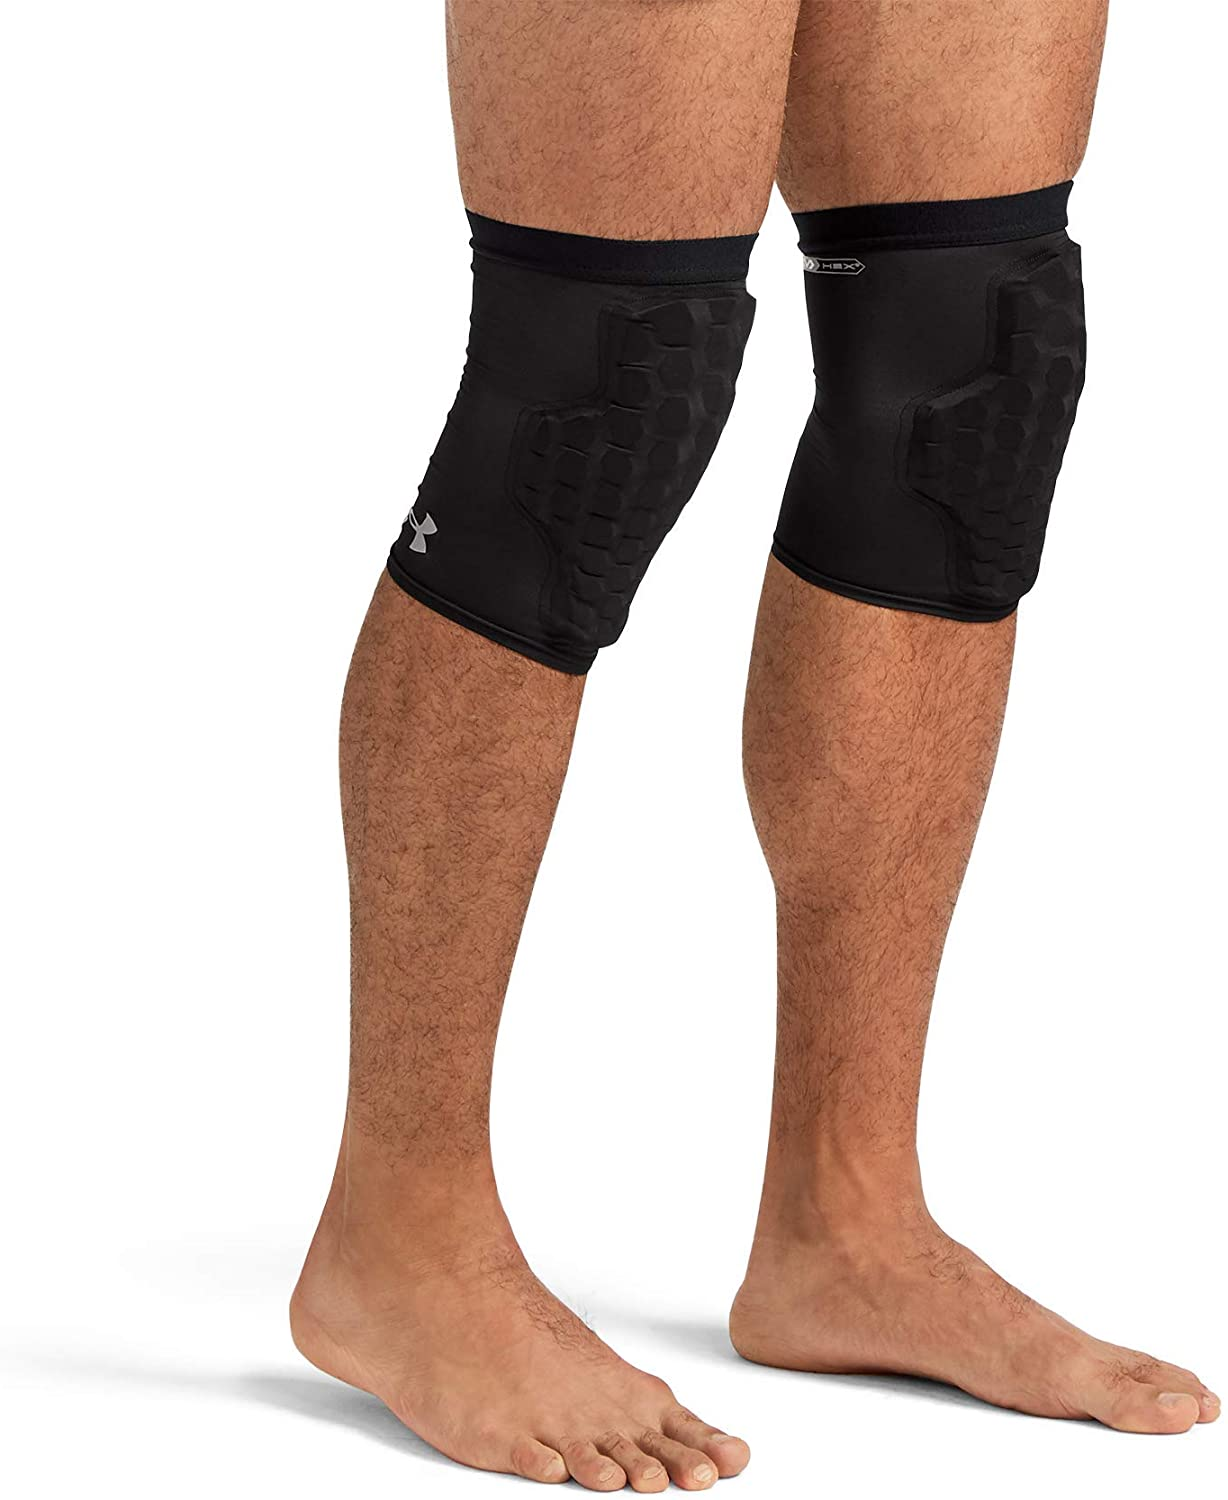 Under Armour Elbow / Knee / Shin Sleeve with Pads. Multipurpose Compression and HEX Padding for Protection. Active Wear for Basketball, Football, Tennis, & Weightlifting (1 Pair) Coderas de Proteccion